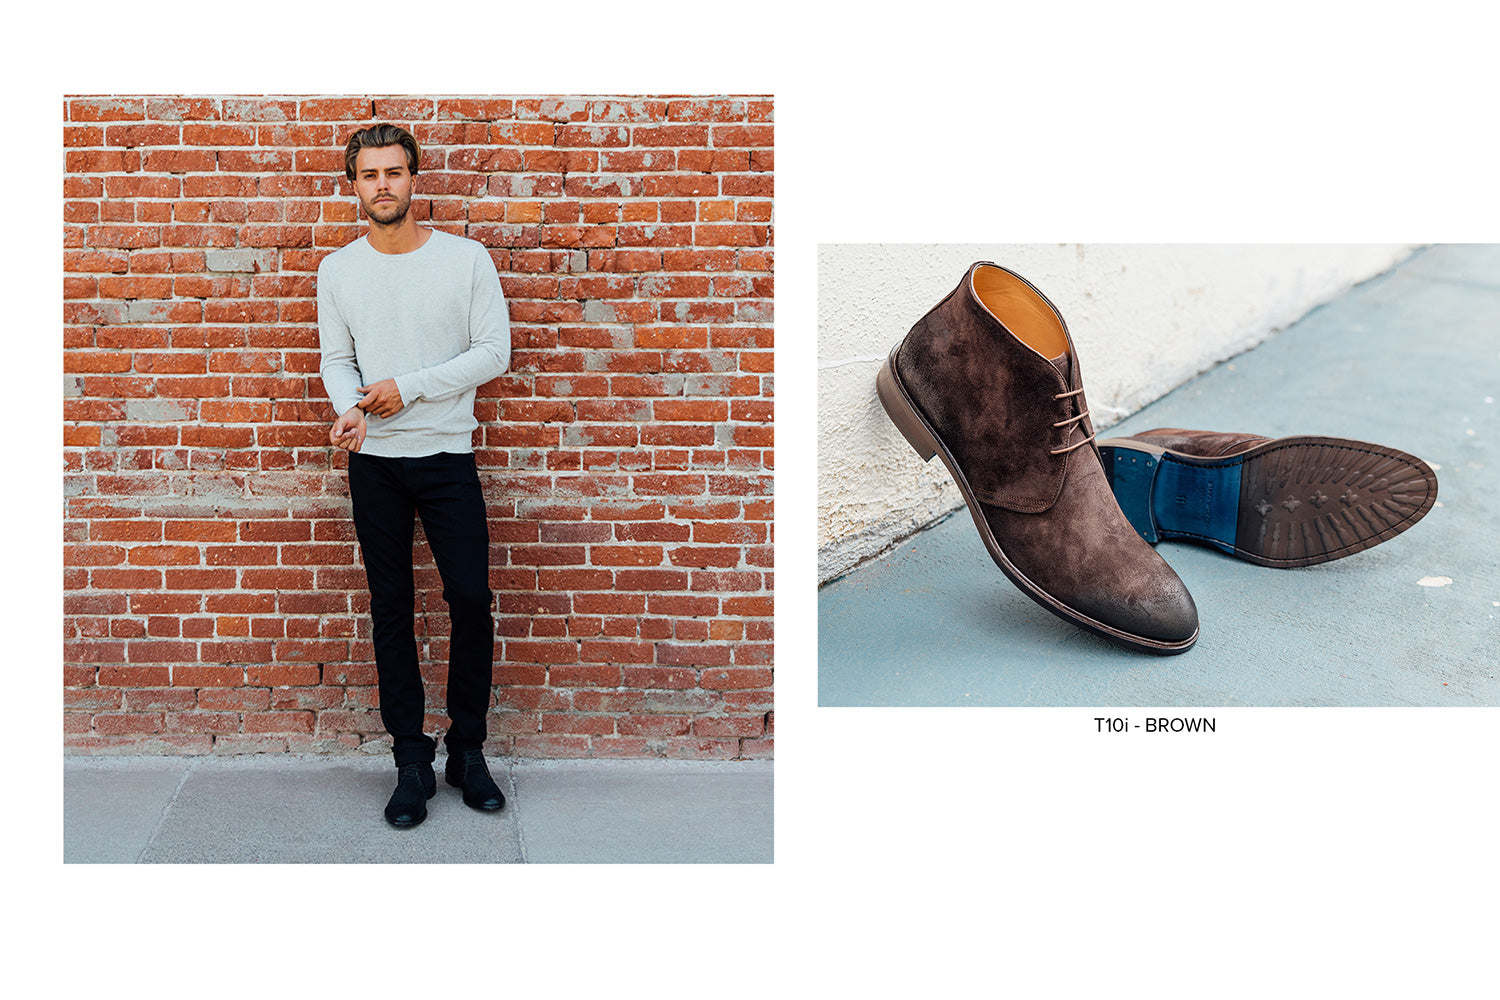 T10i Chukka Boot in Brown by Blake McKay